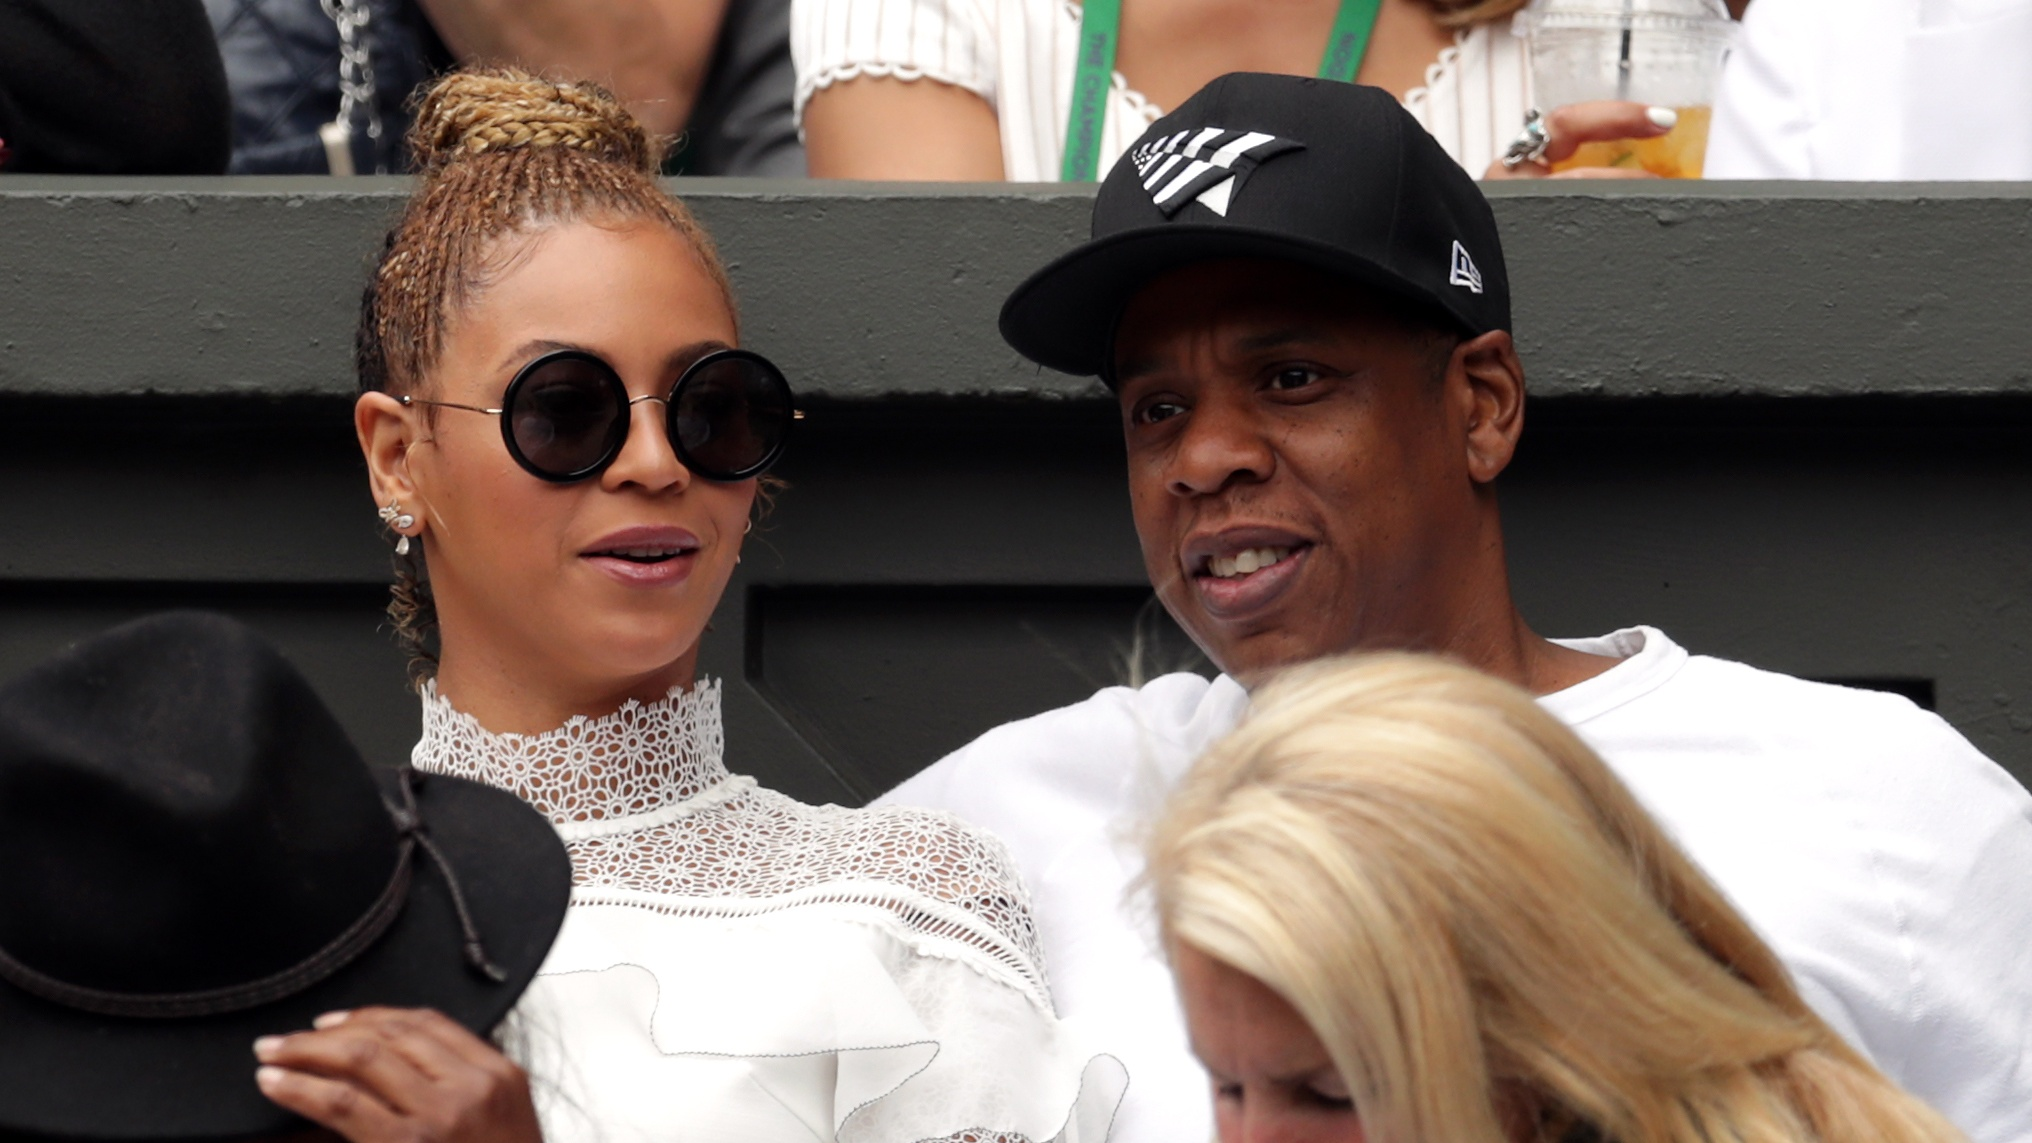 Beyonce gives birth to twins, fans react on social media